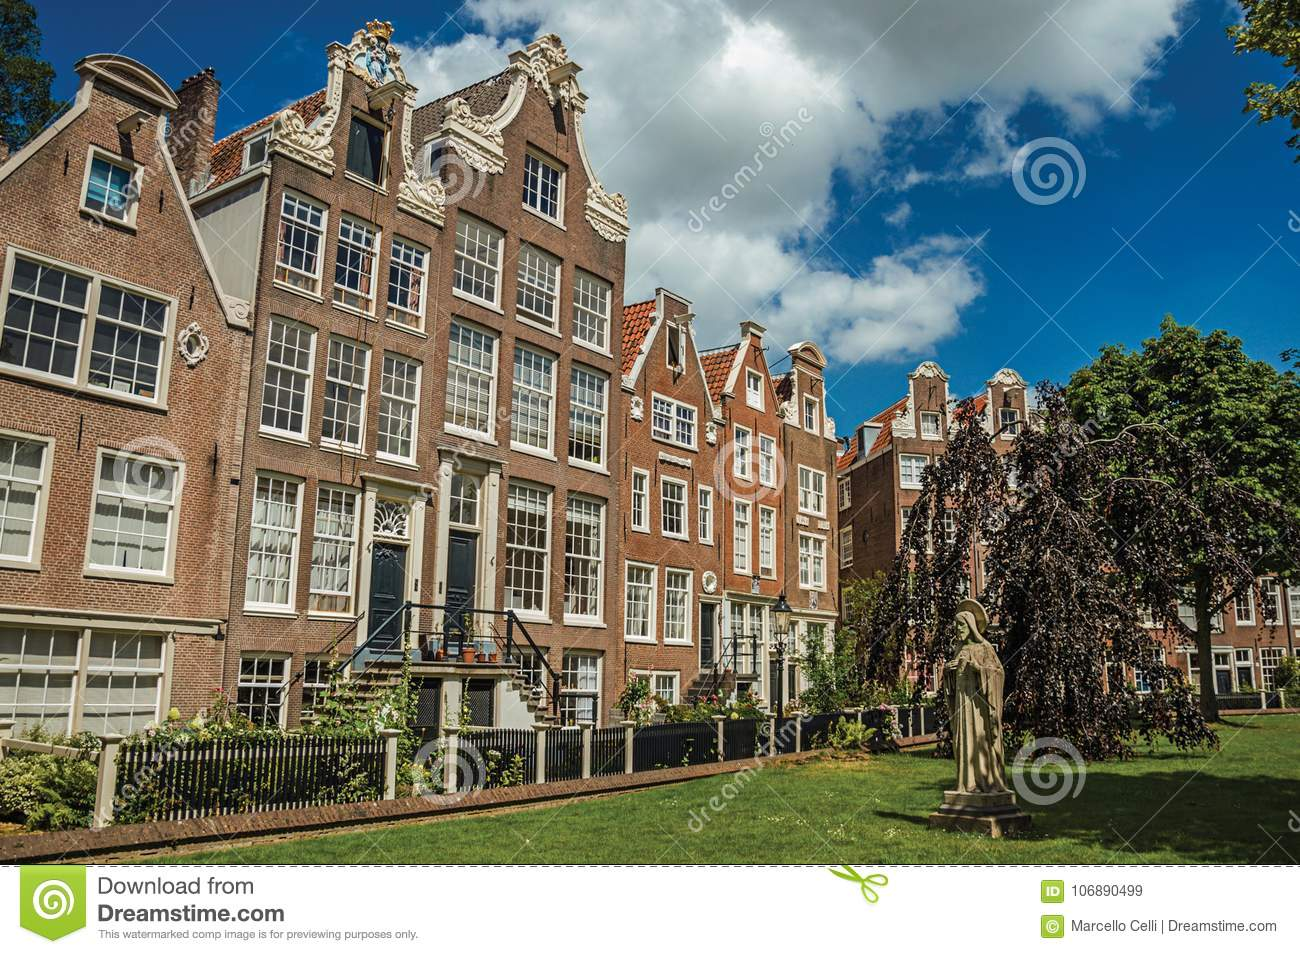 Semidetached Typical Houses And Green Garden At Begijnhof, A ...